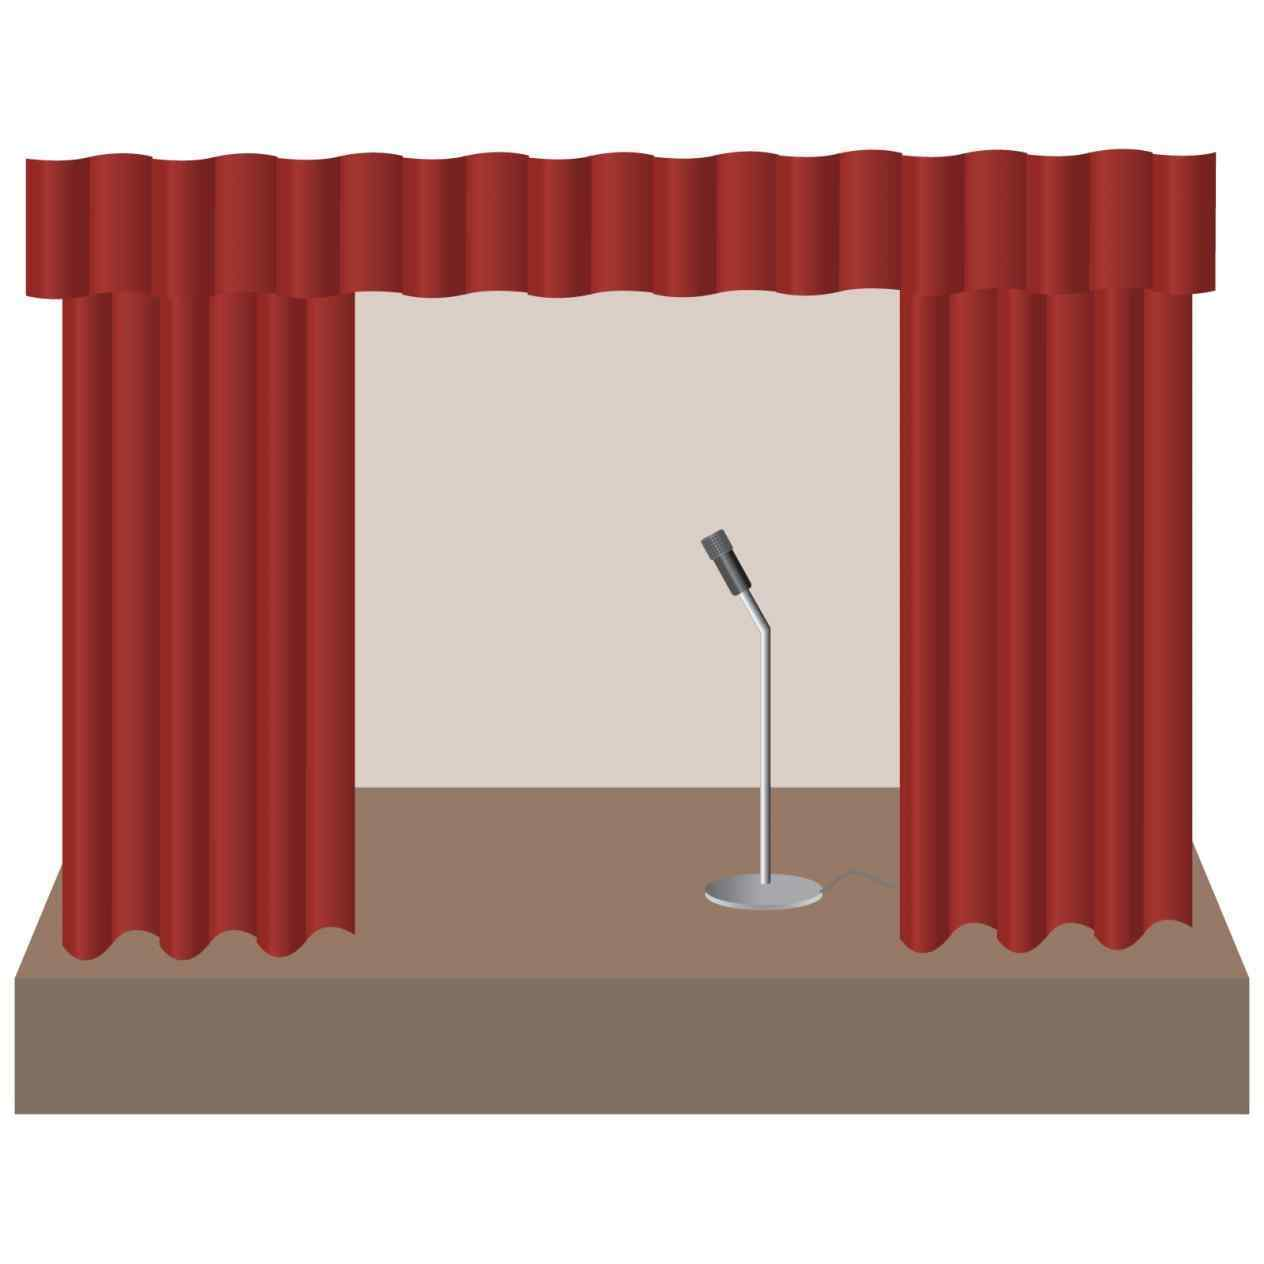 1264x1264 How To Draw Stage Curtains Step By Okeviewdesign.co